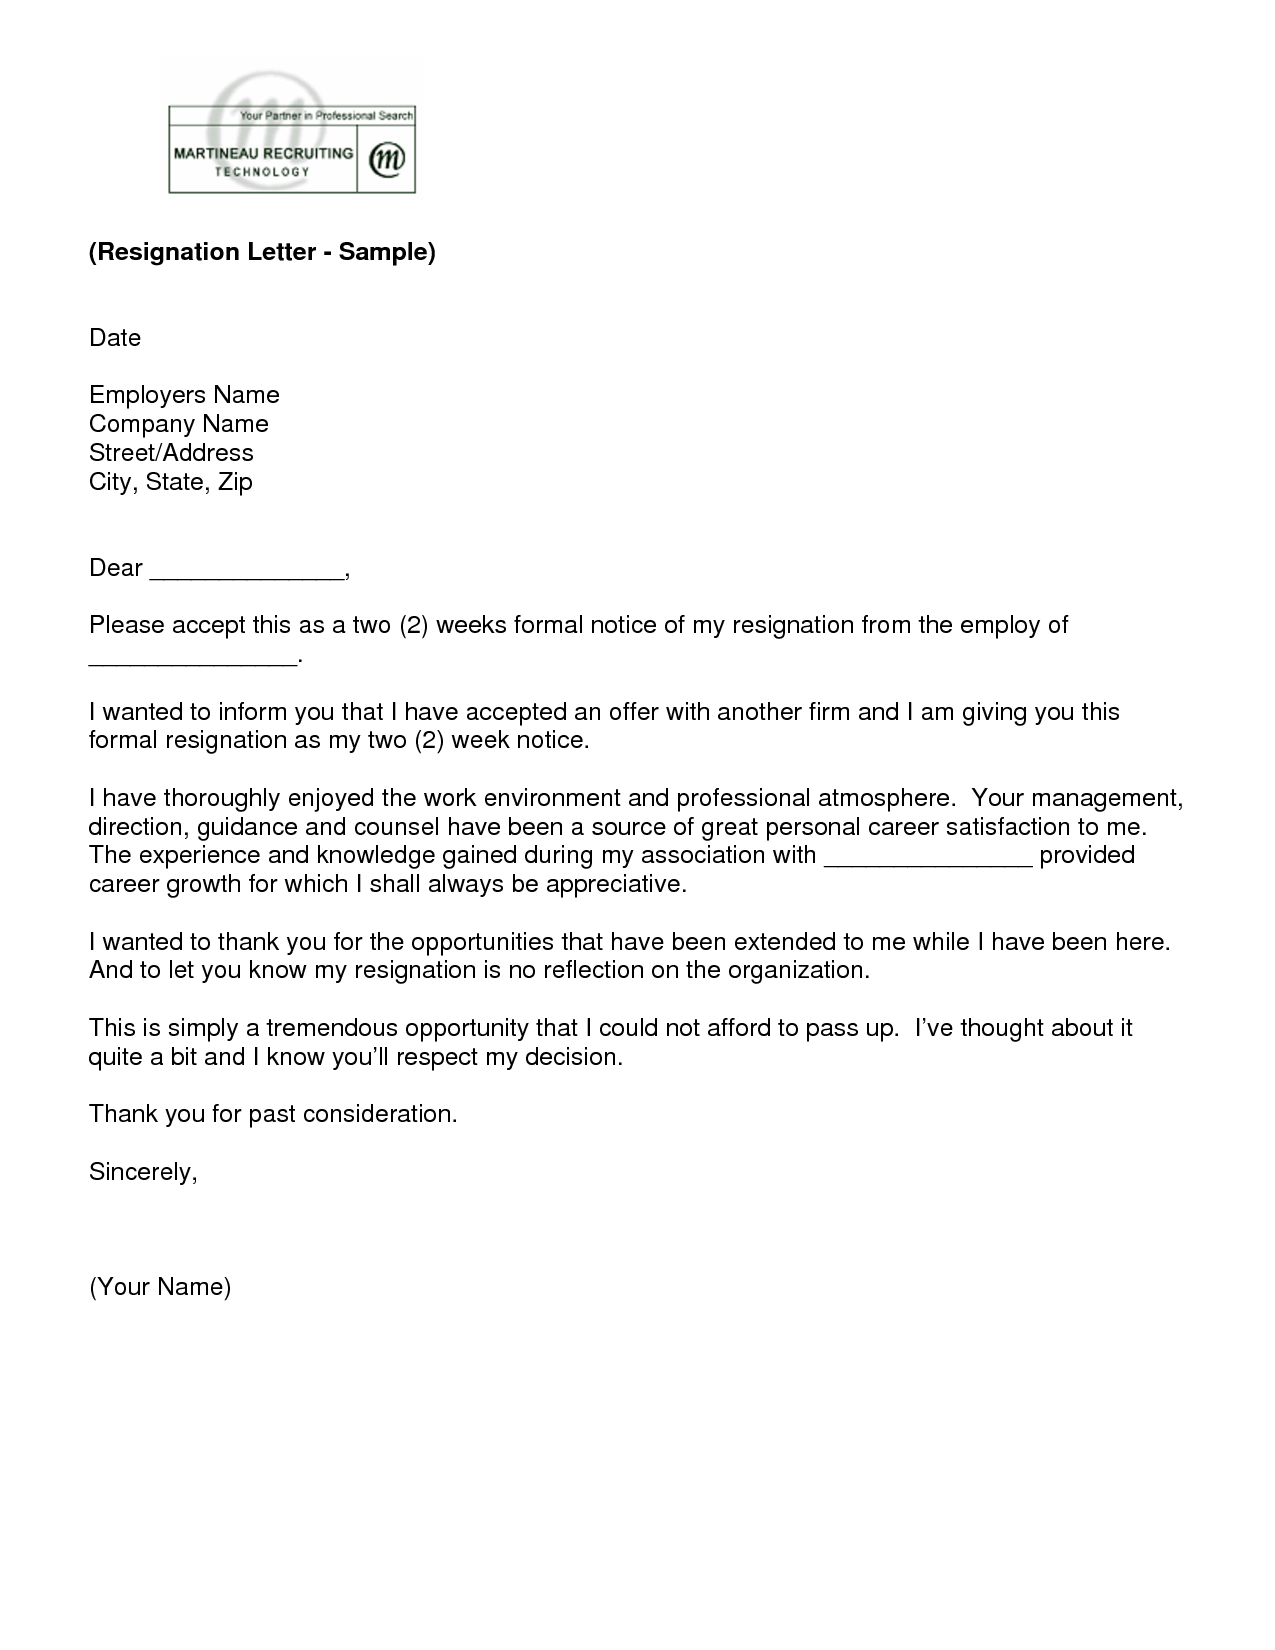 Letter Of Resignation 2 Weeks Notice Template  2 Weeks Notice Letter Format